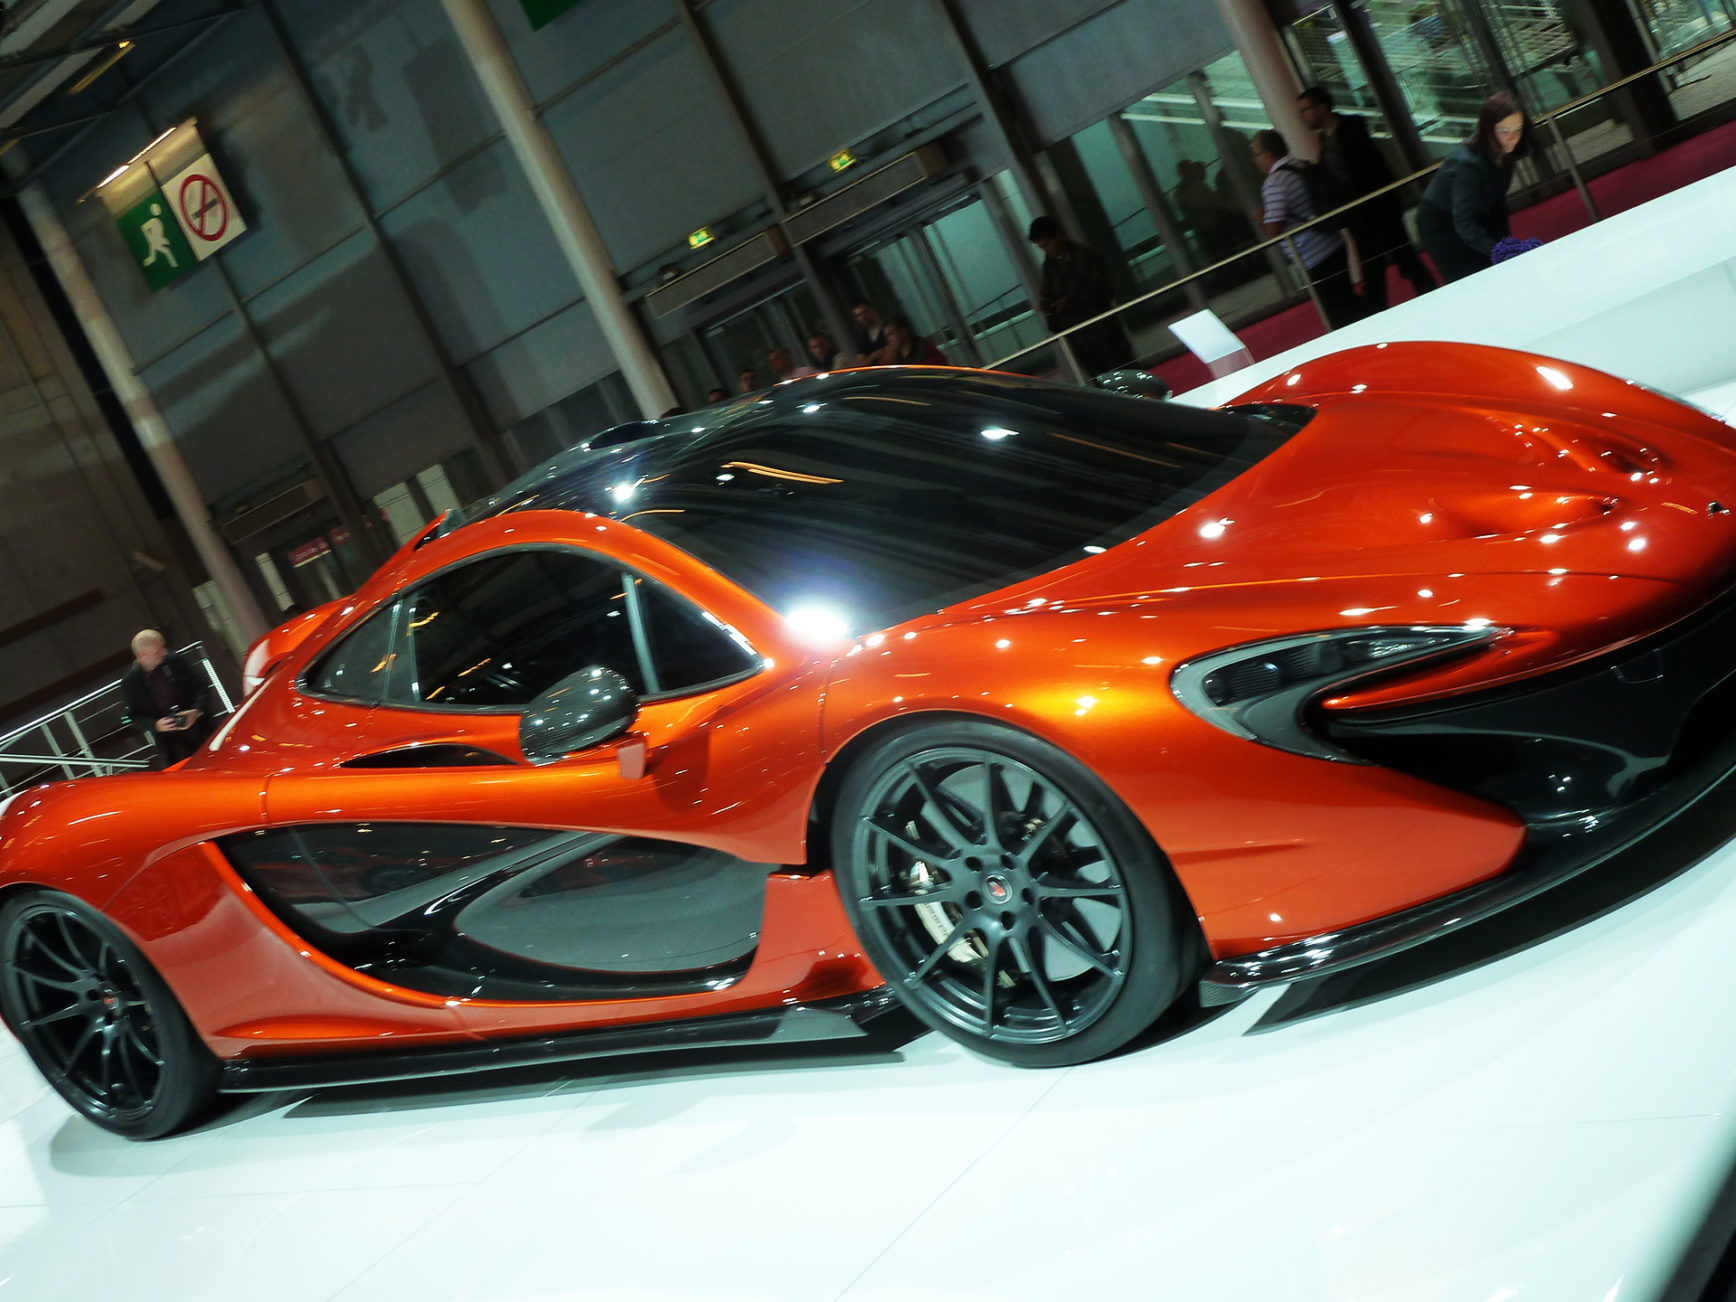 McLaren-P1-front-side-2012-Mondial-Automobile-photo-elj-dm